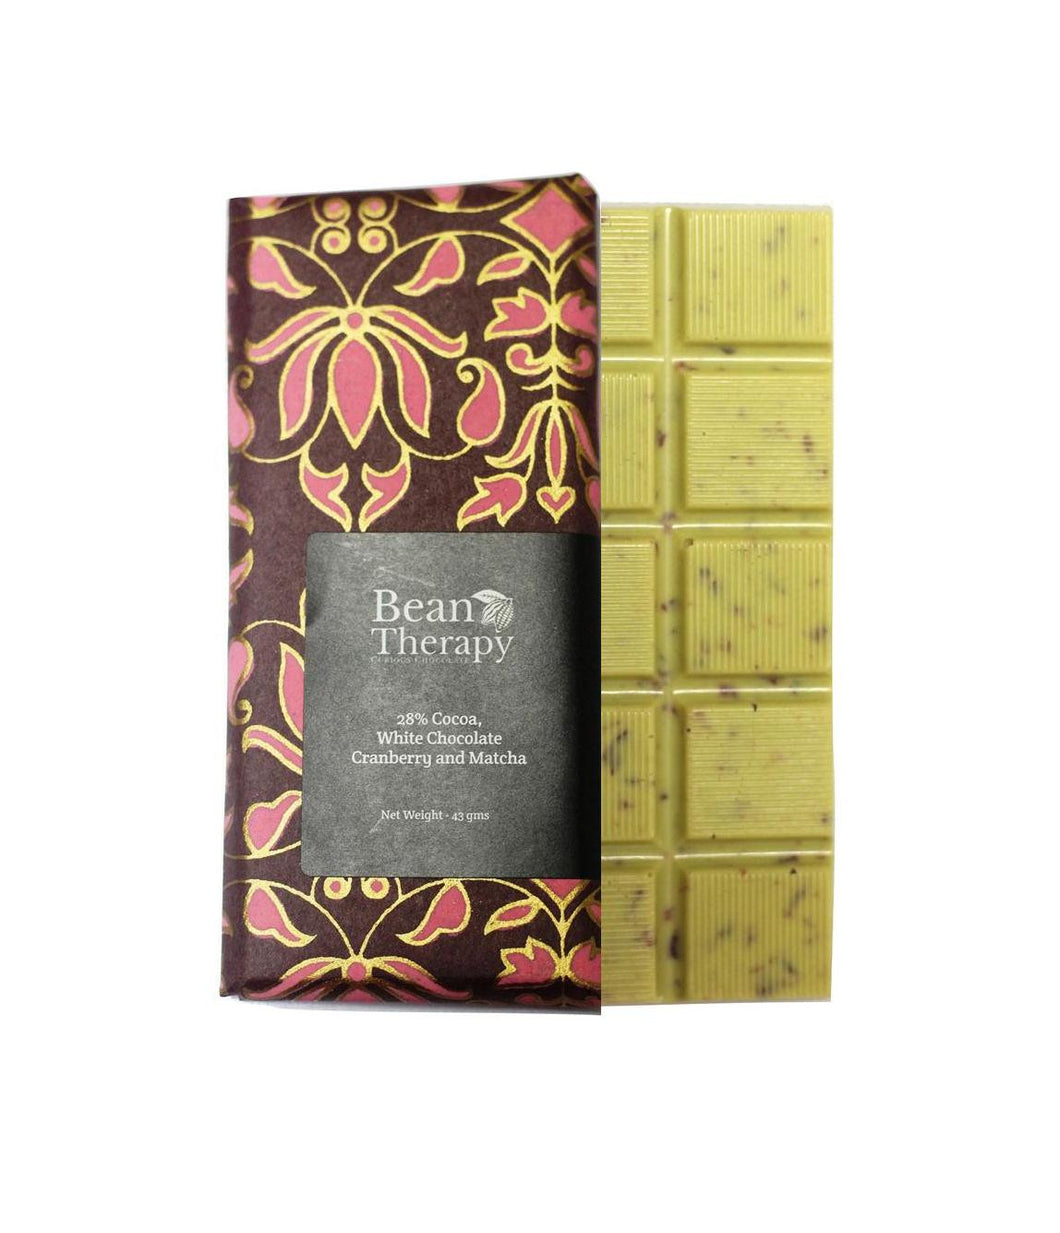 Cranberry and Matcha - Bean Therapy Chocolate